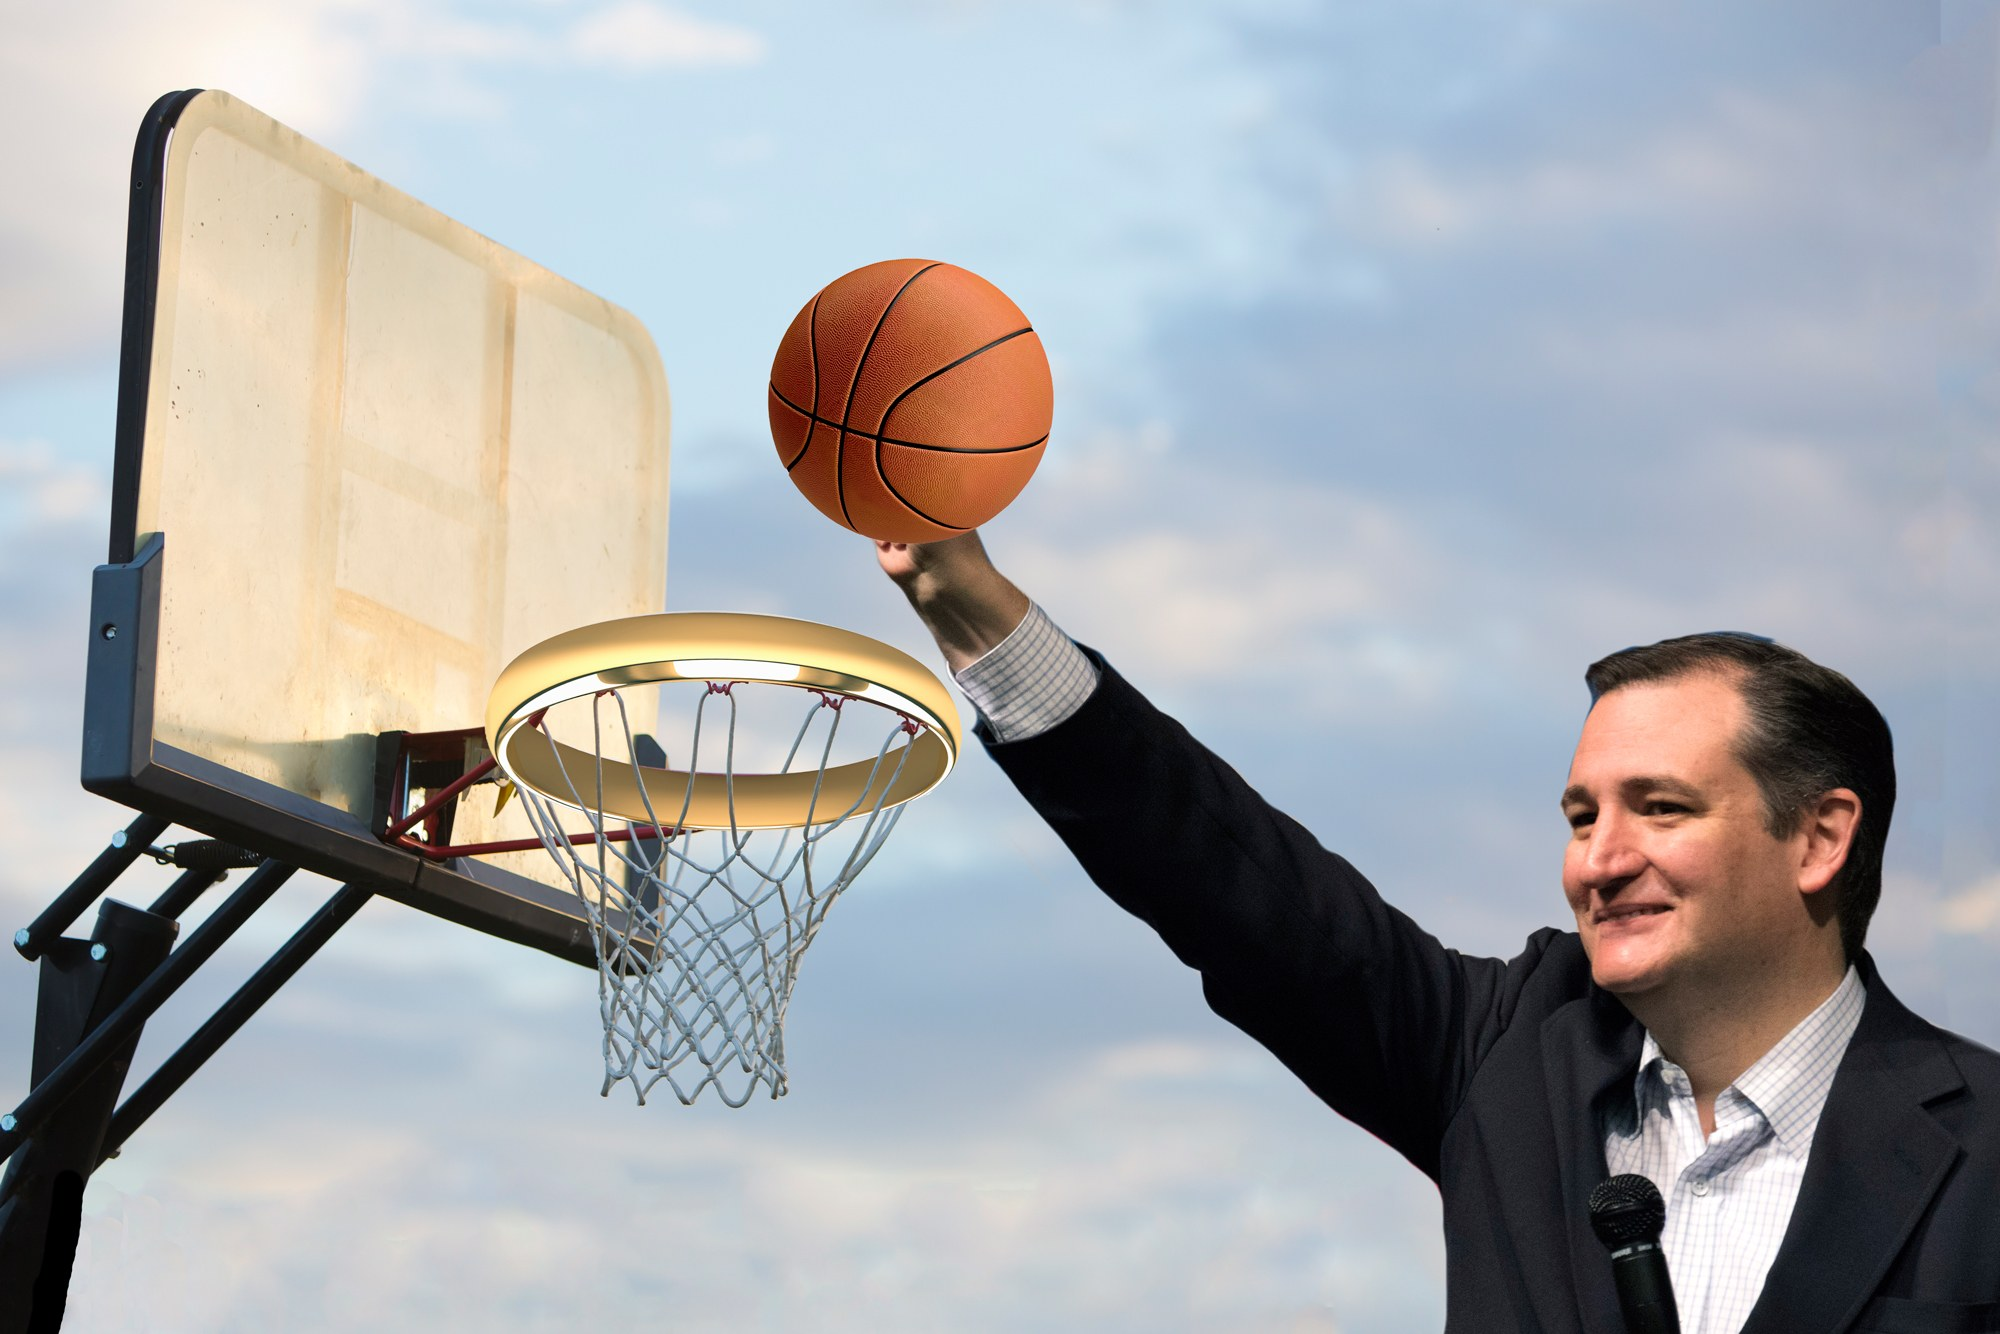 ted cruz, ted cruz basketball